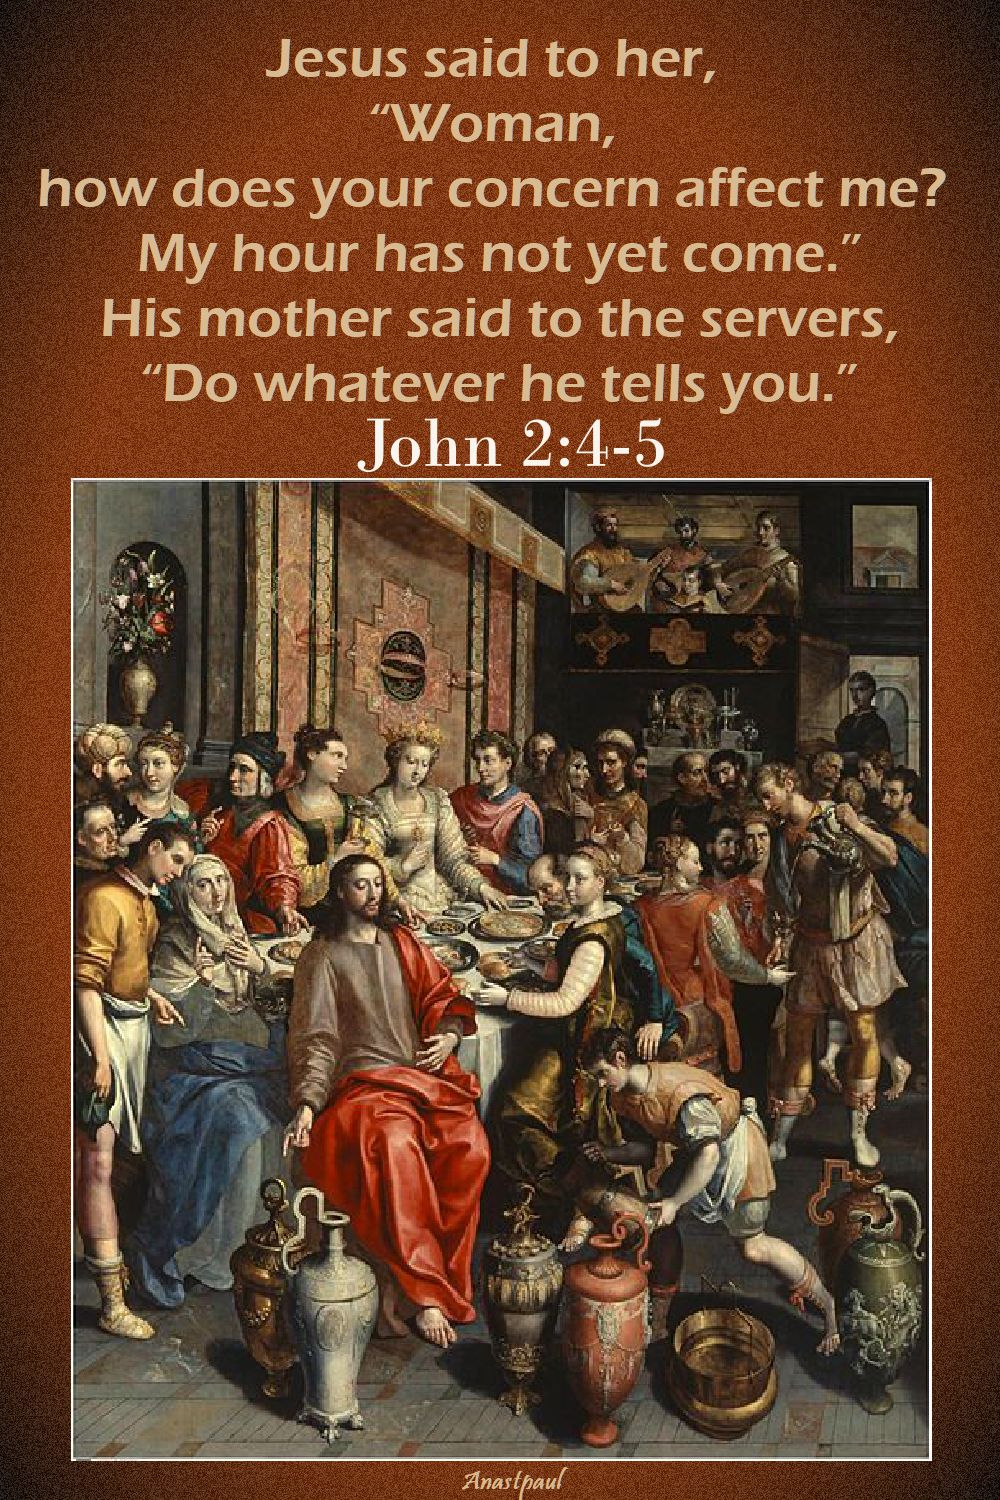 jesus said to her, woman - john 2 4-5